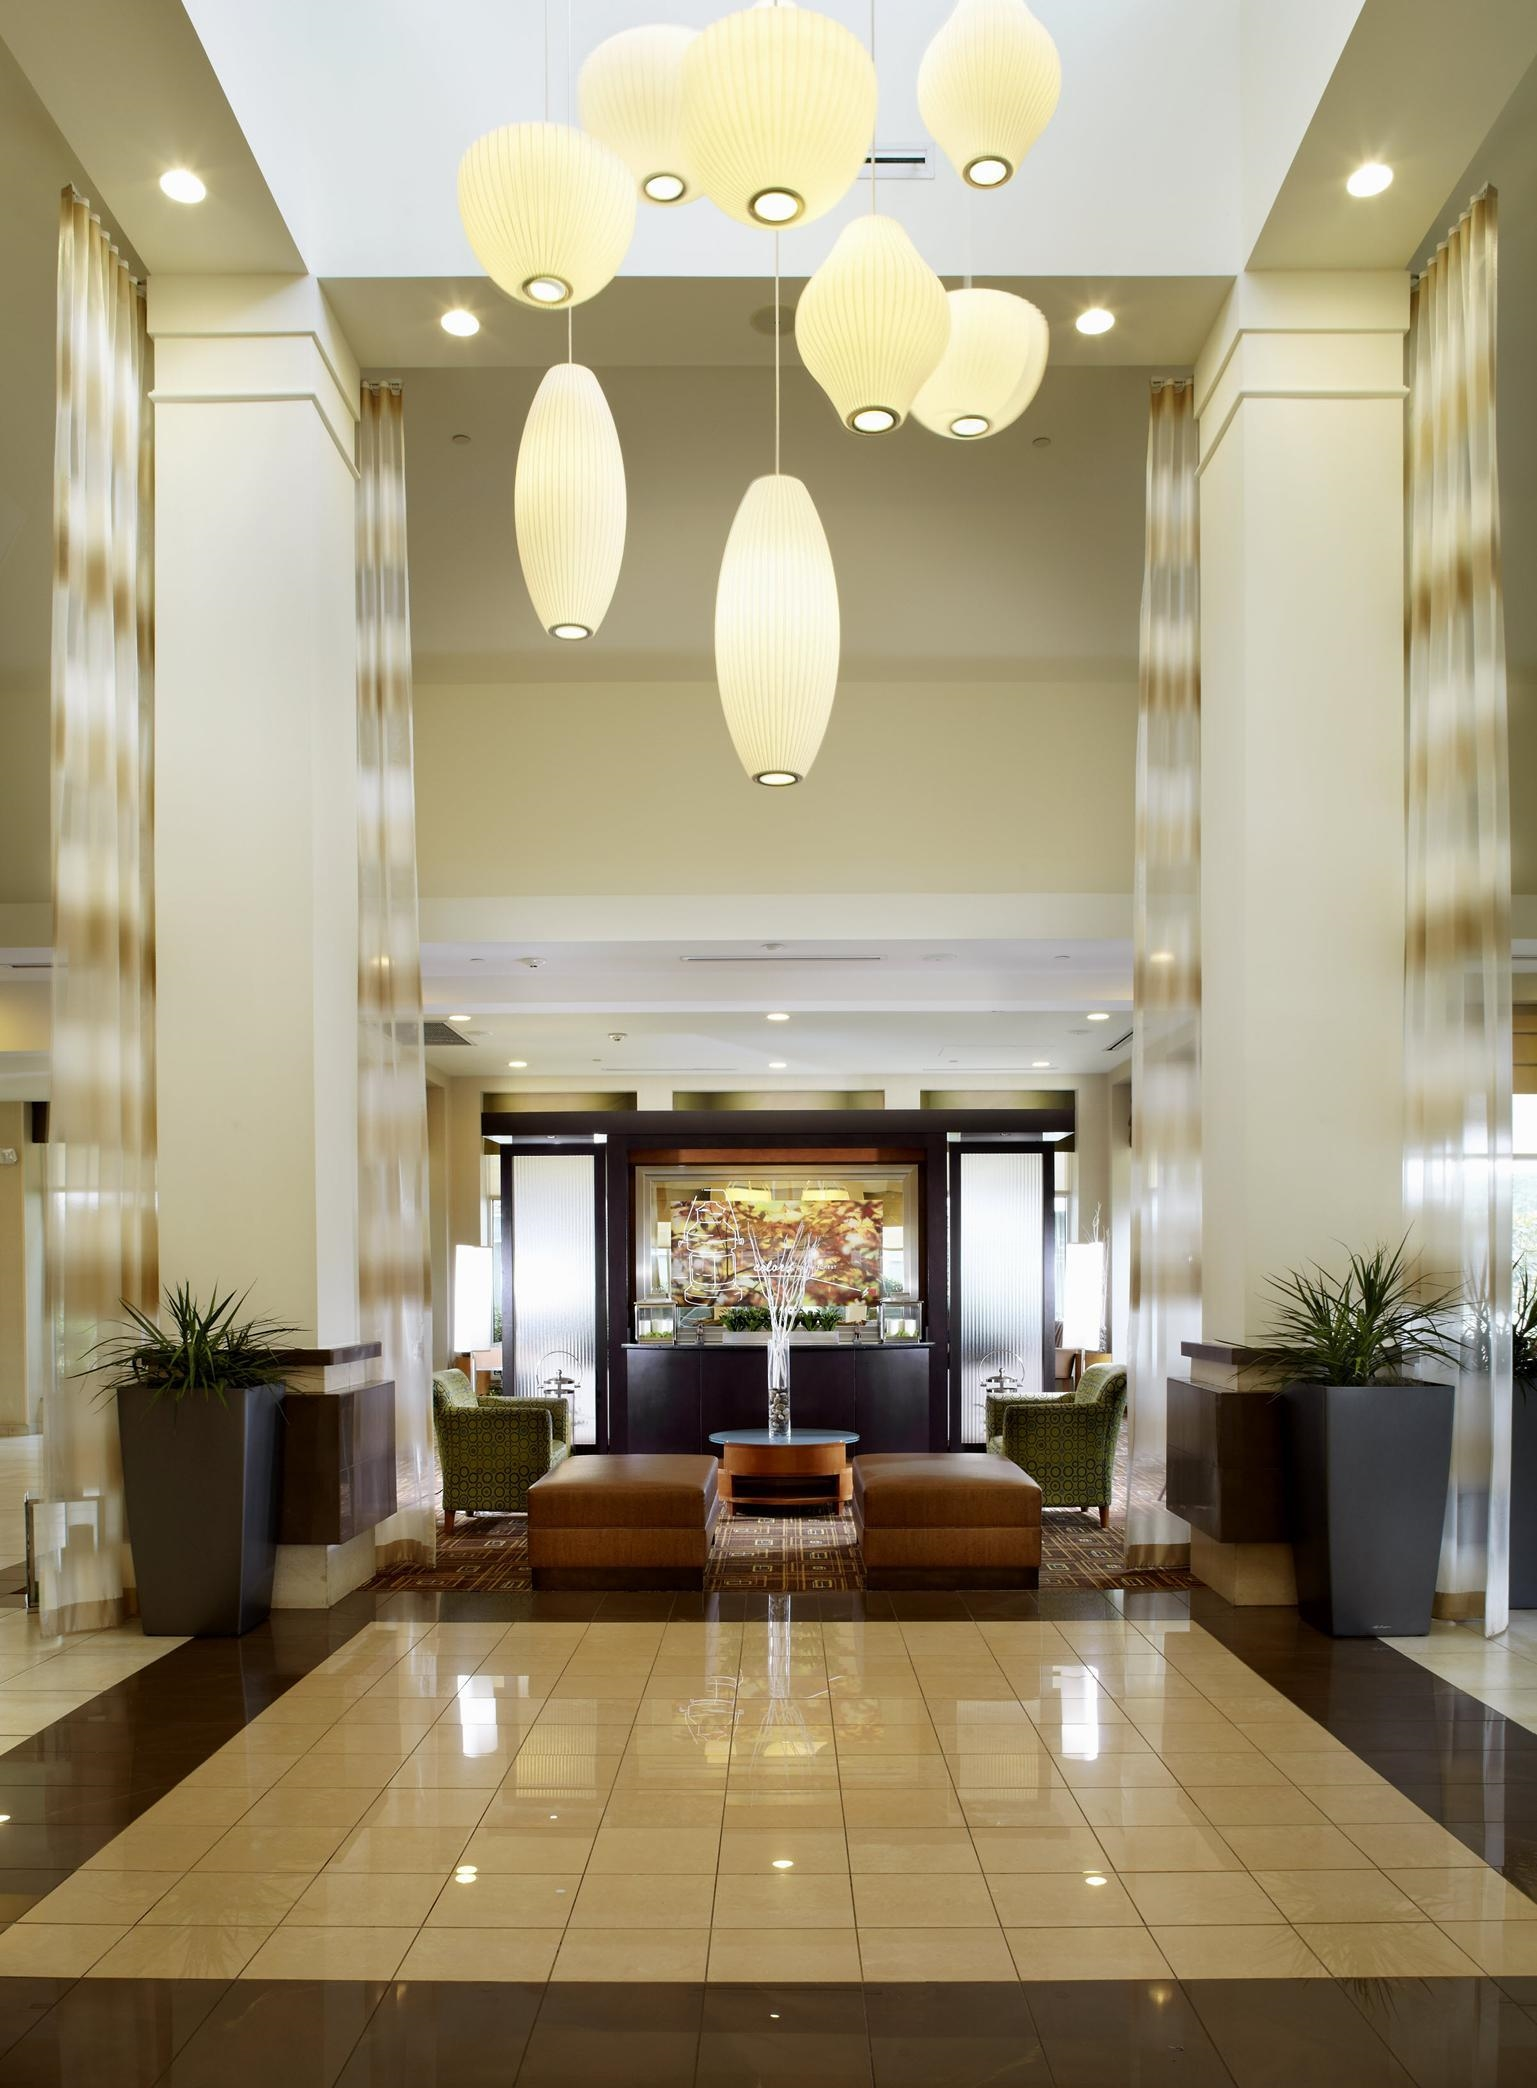 Hilton Garden Inn Dallas/Arlington image 20